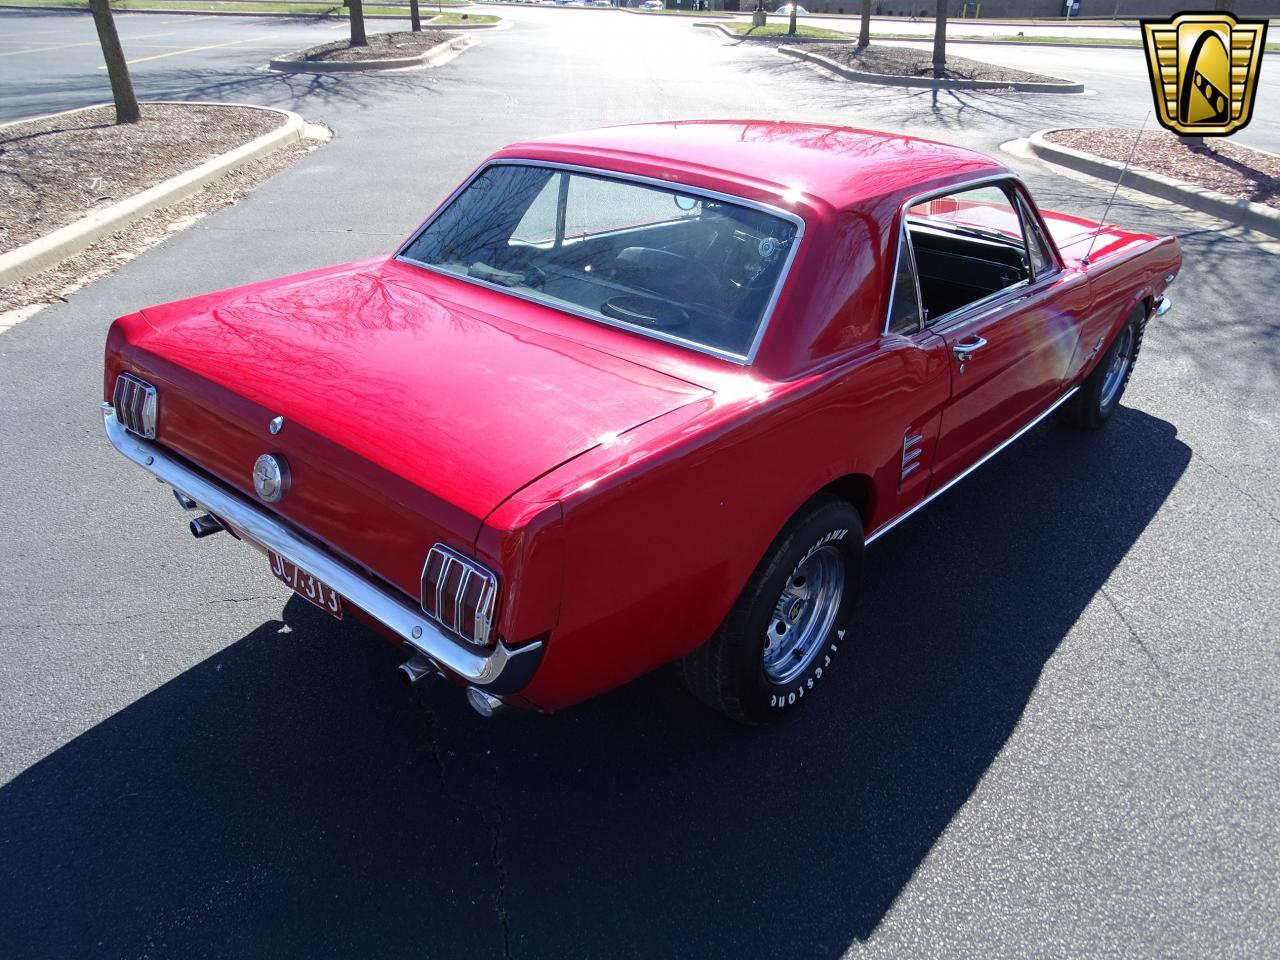 Large Picture of Classic '66 Ford Mustang located in O'Fallon Illinois - $16,595.00 - MZEK